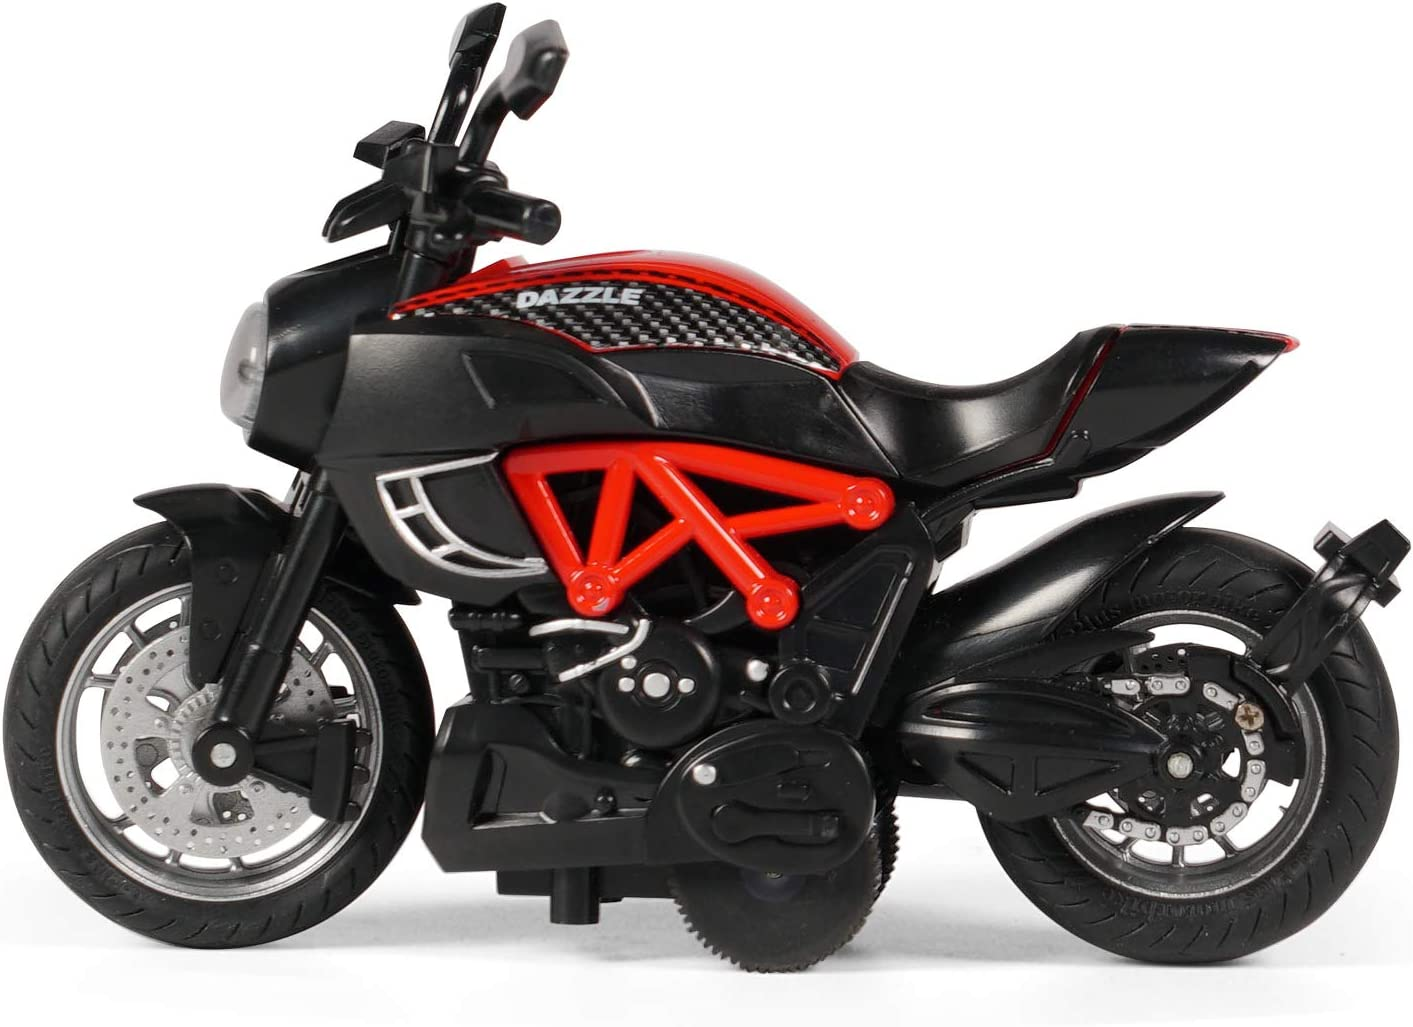 Red Motorcycle Toy for Boys Pull Back Motorcycle Toys with Sound and Light,The Best Gift for Children,Toy Motorcycles for Toddlers